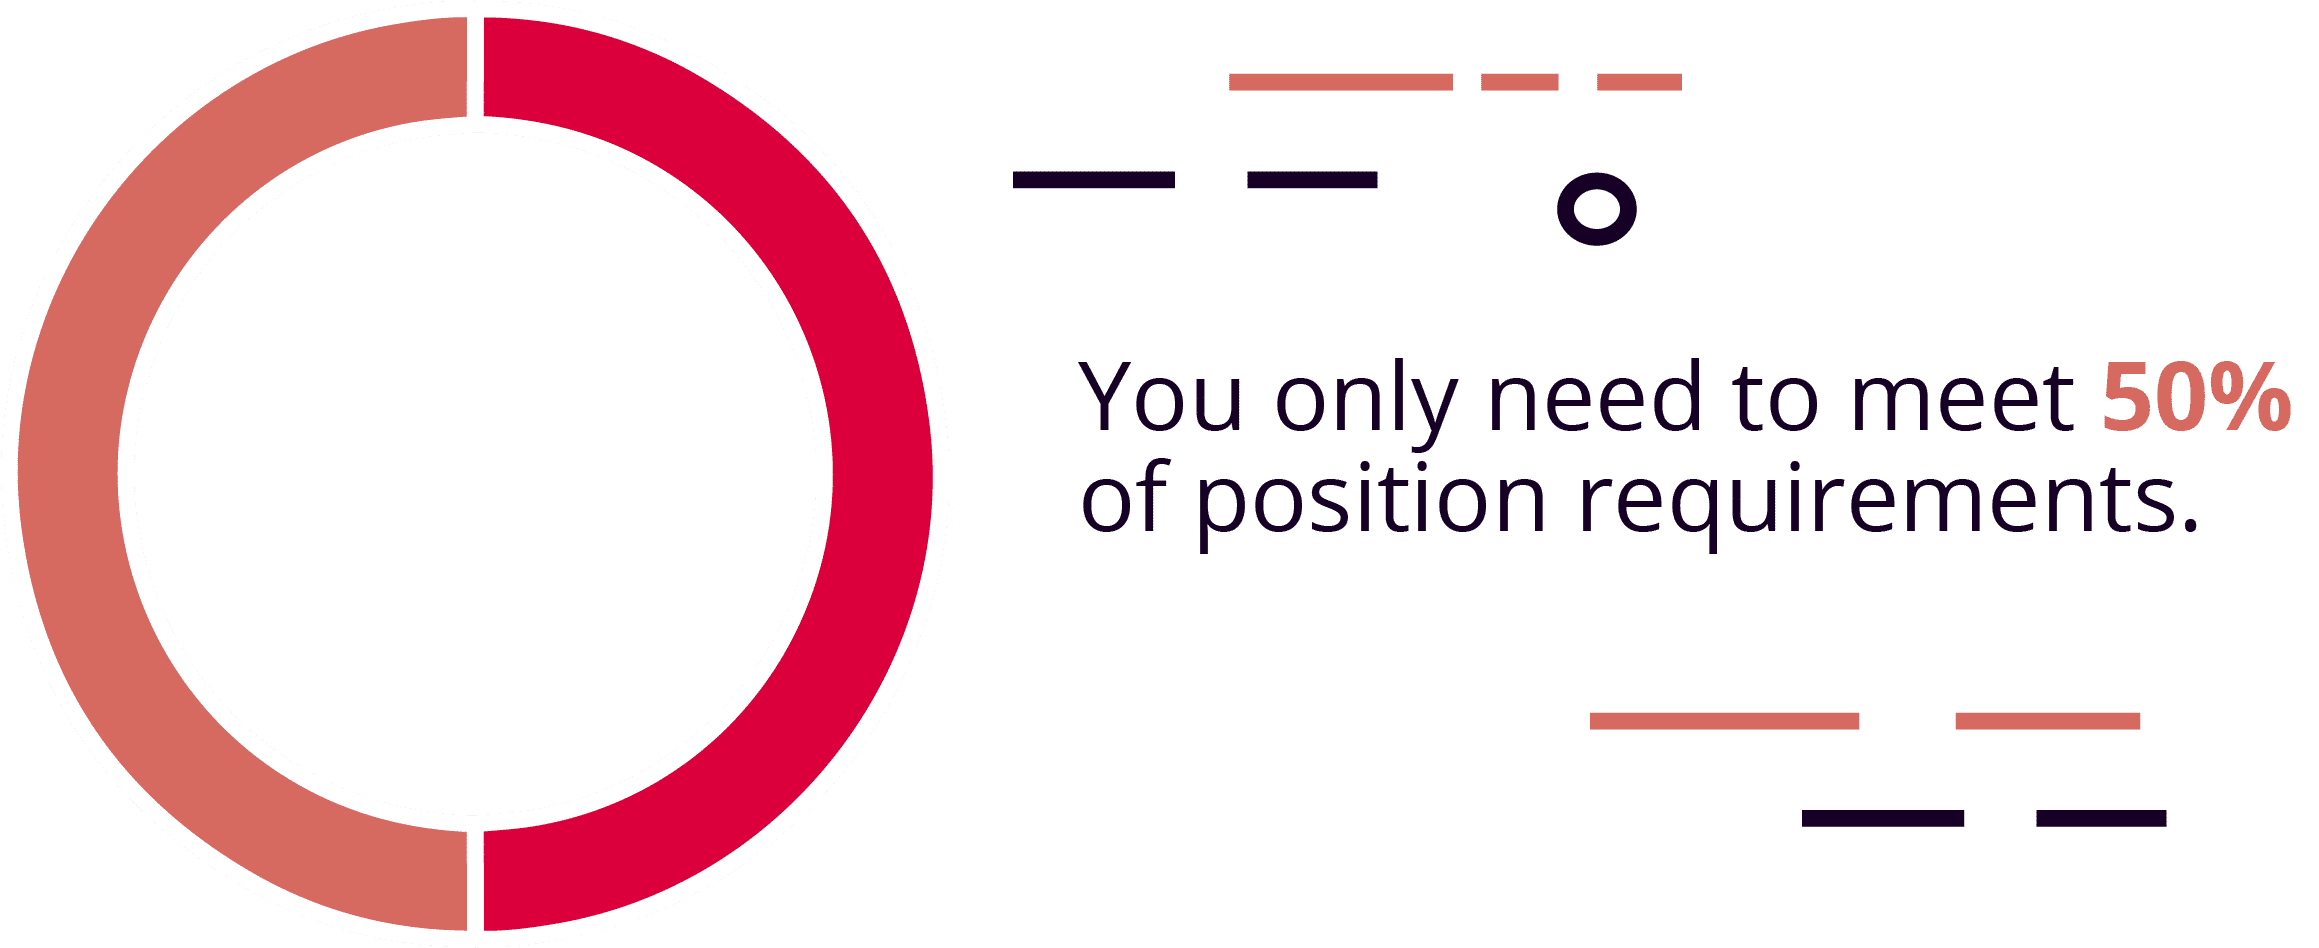 Don't worry about matching all the job requirements on your resume